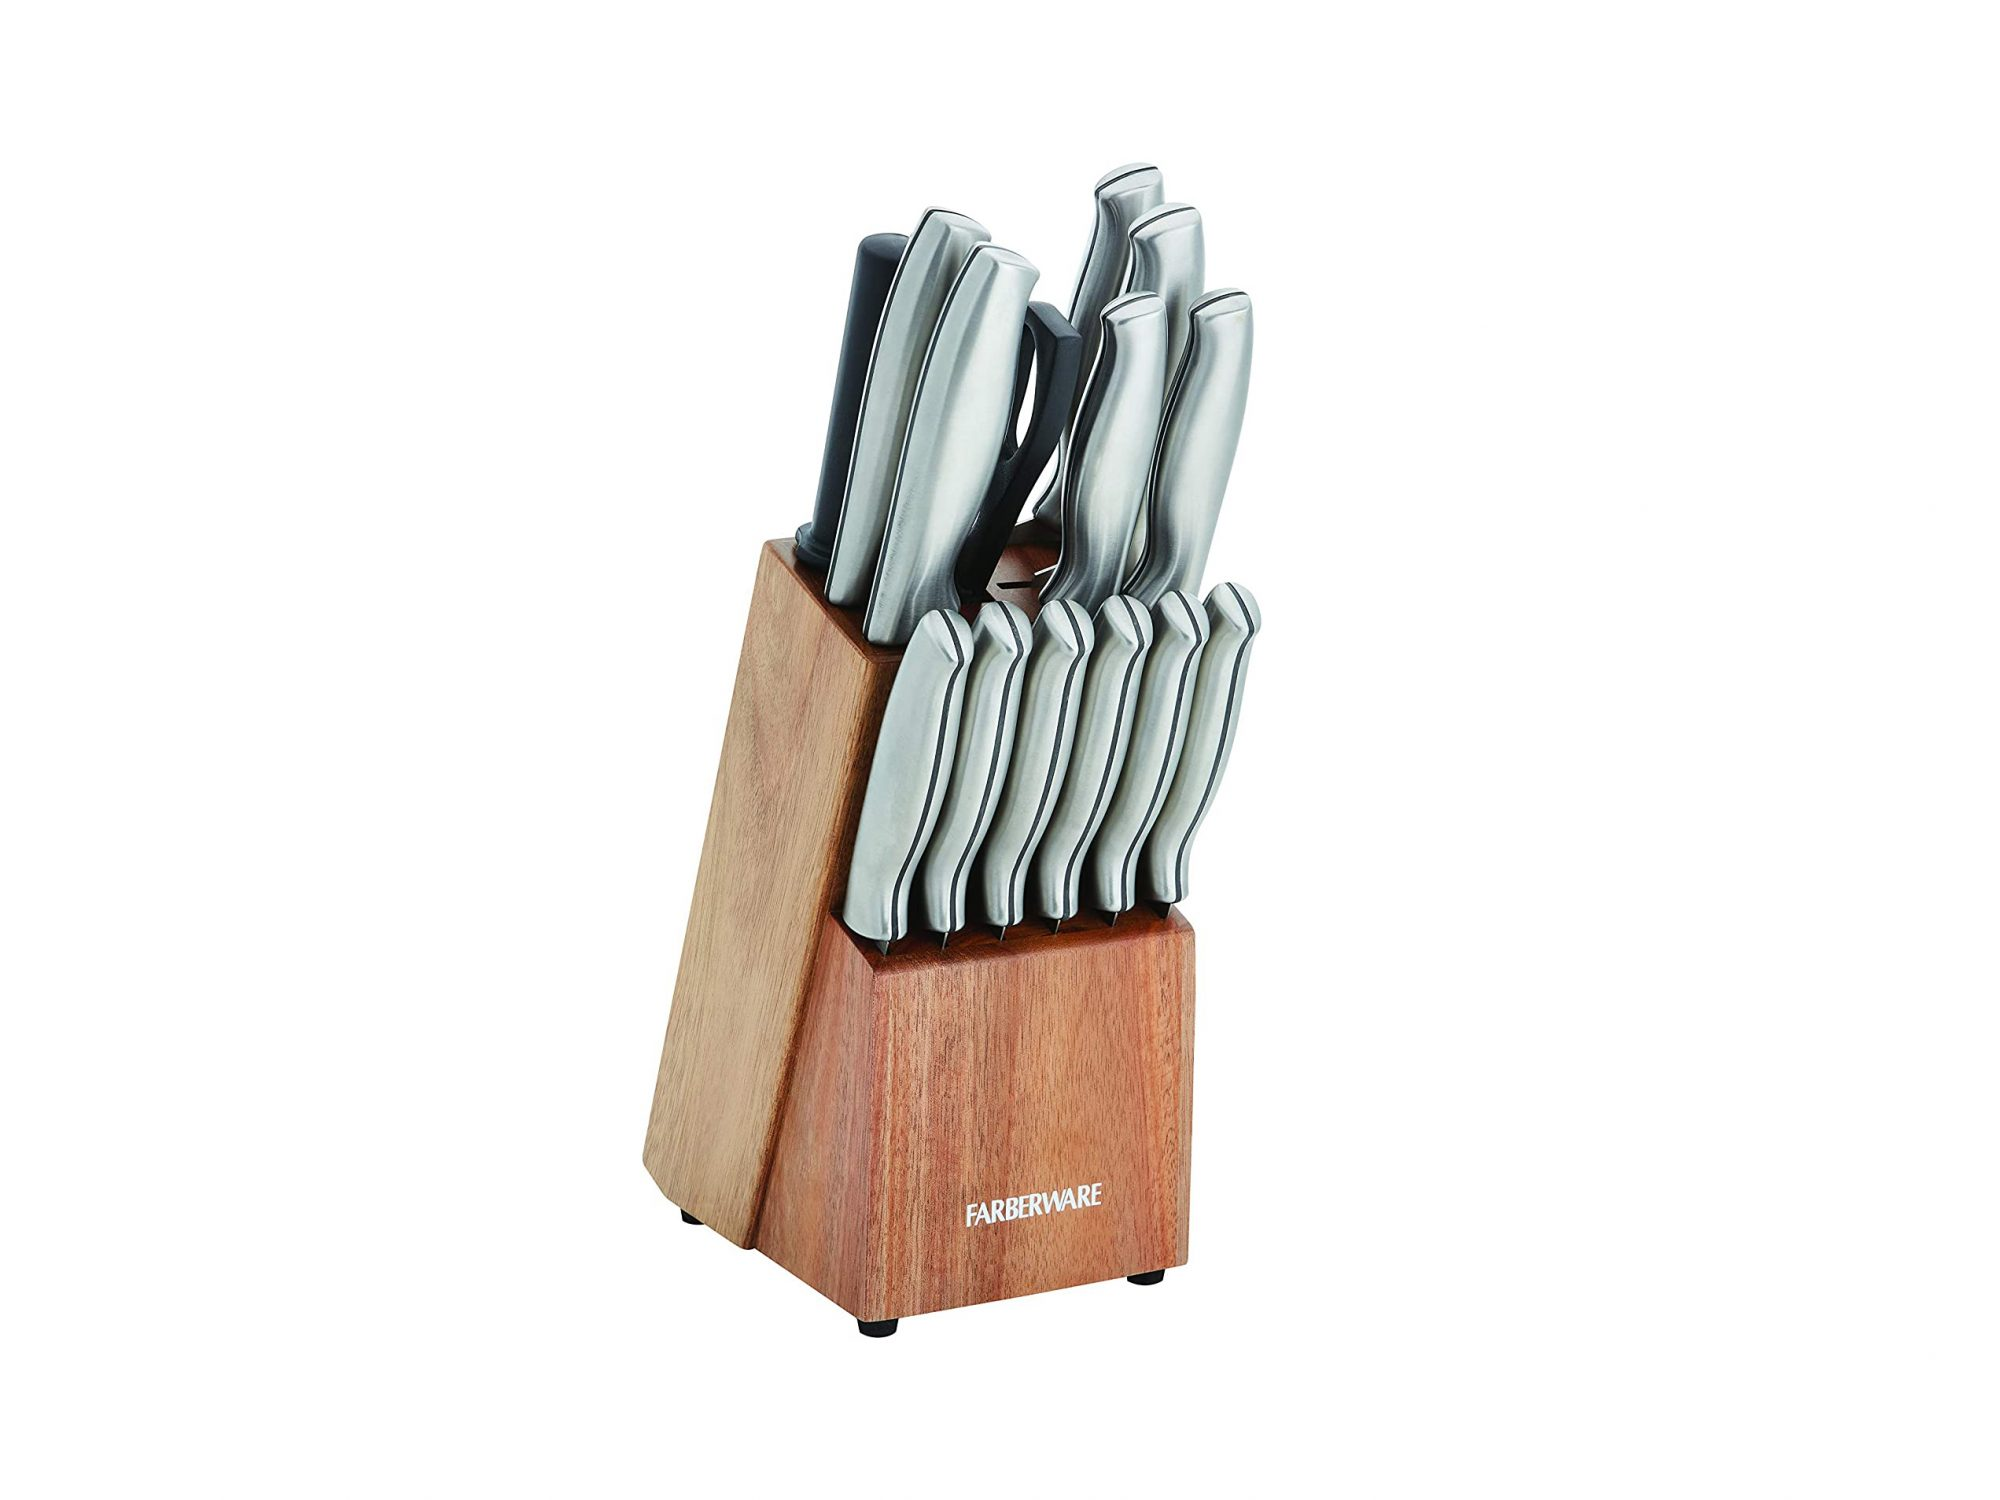 Farberware Stamped 15-Piece High-Carbon Stainless Steel Knife Block Set